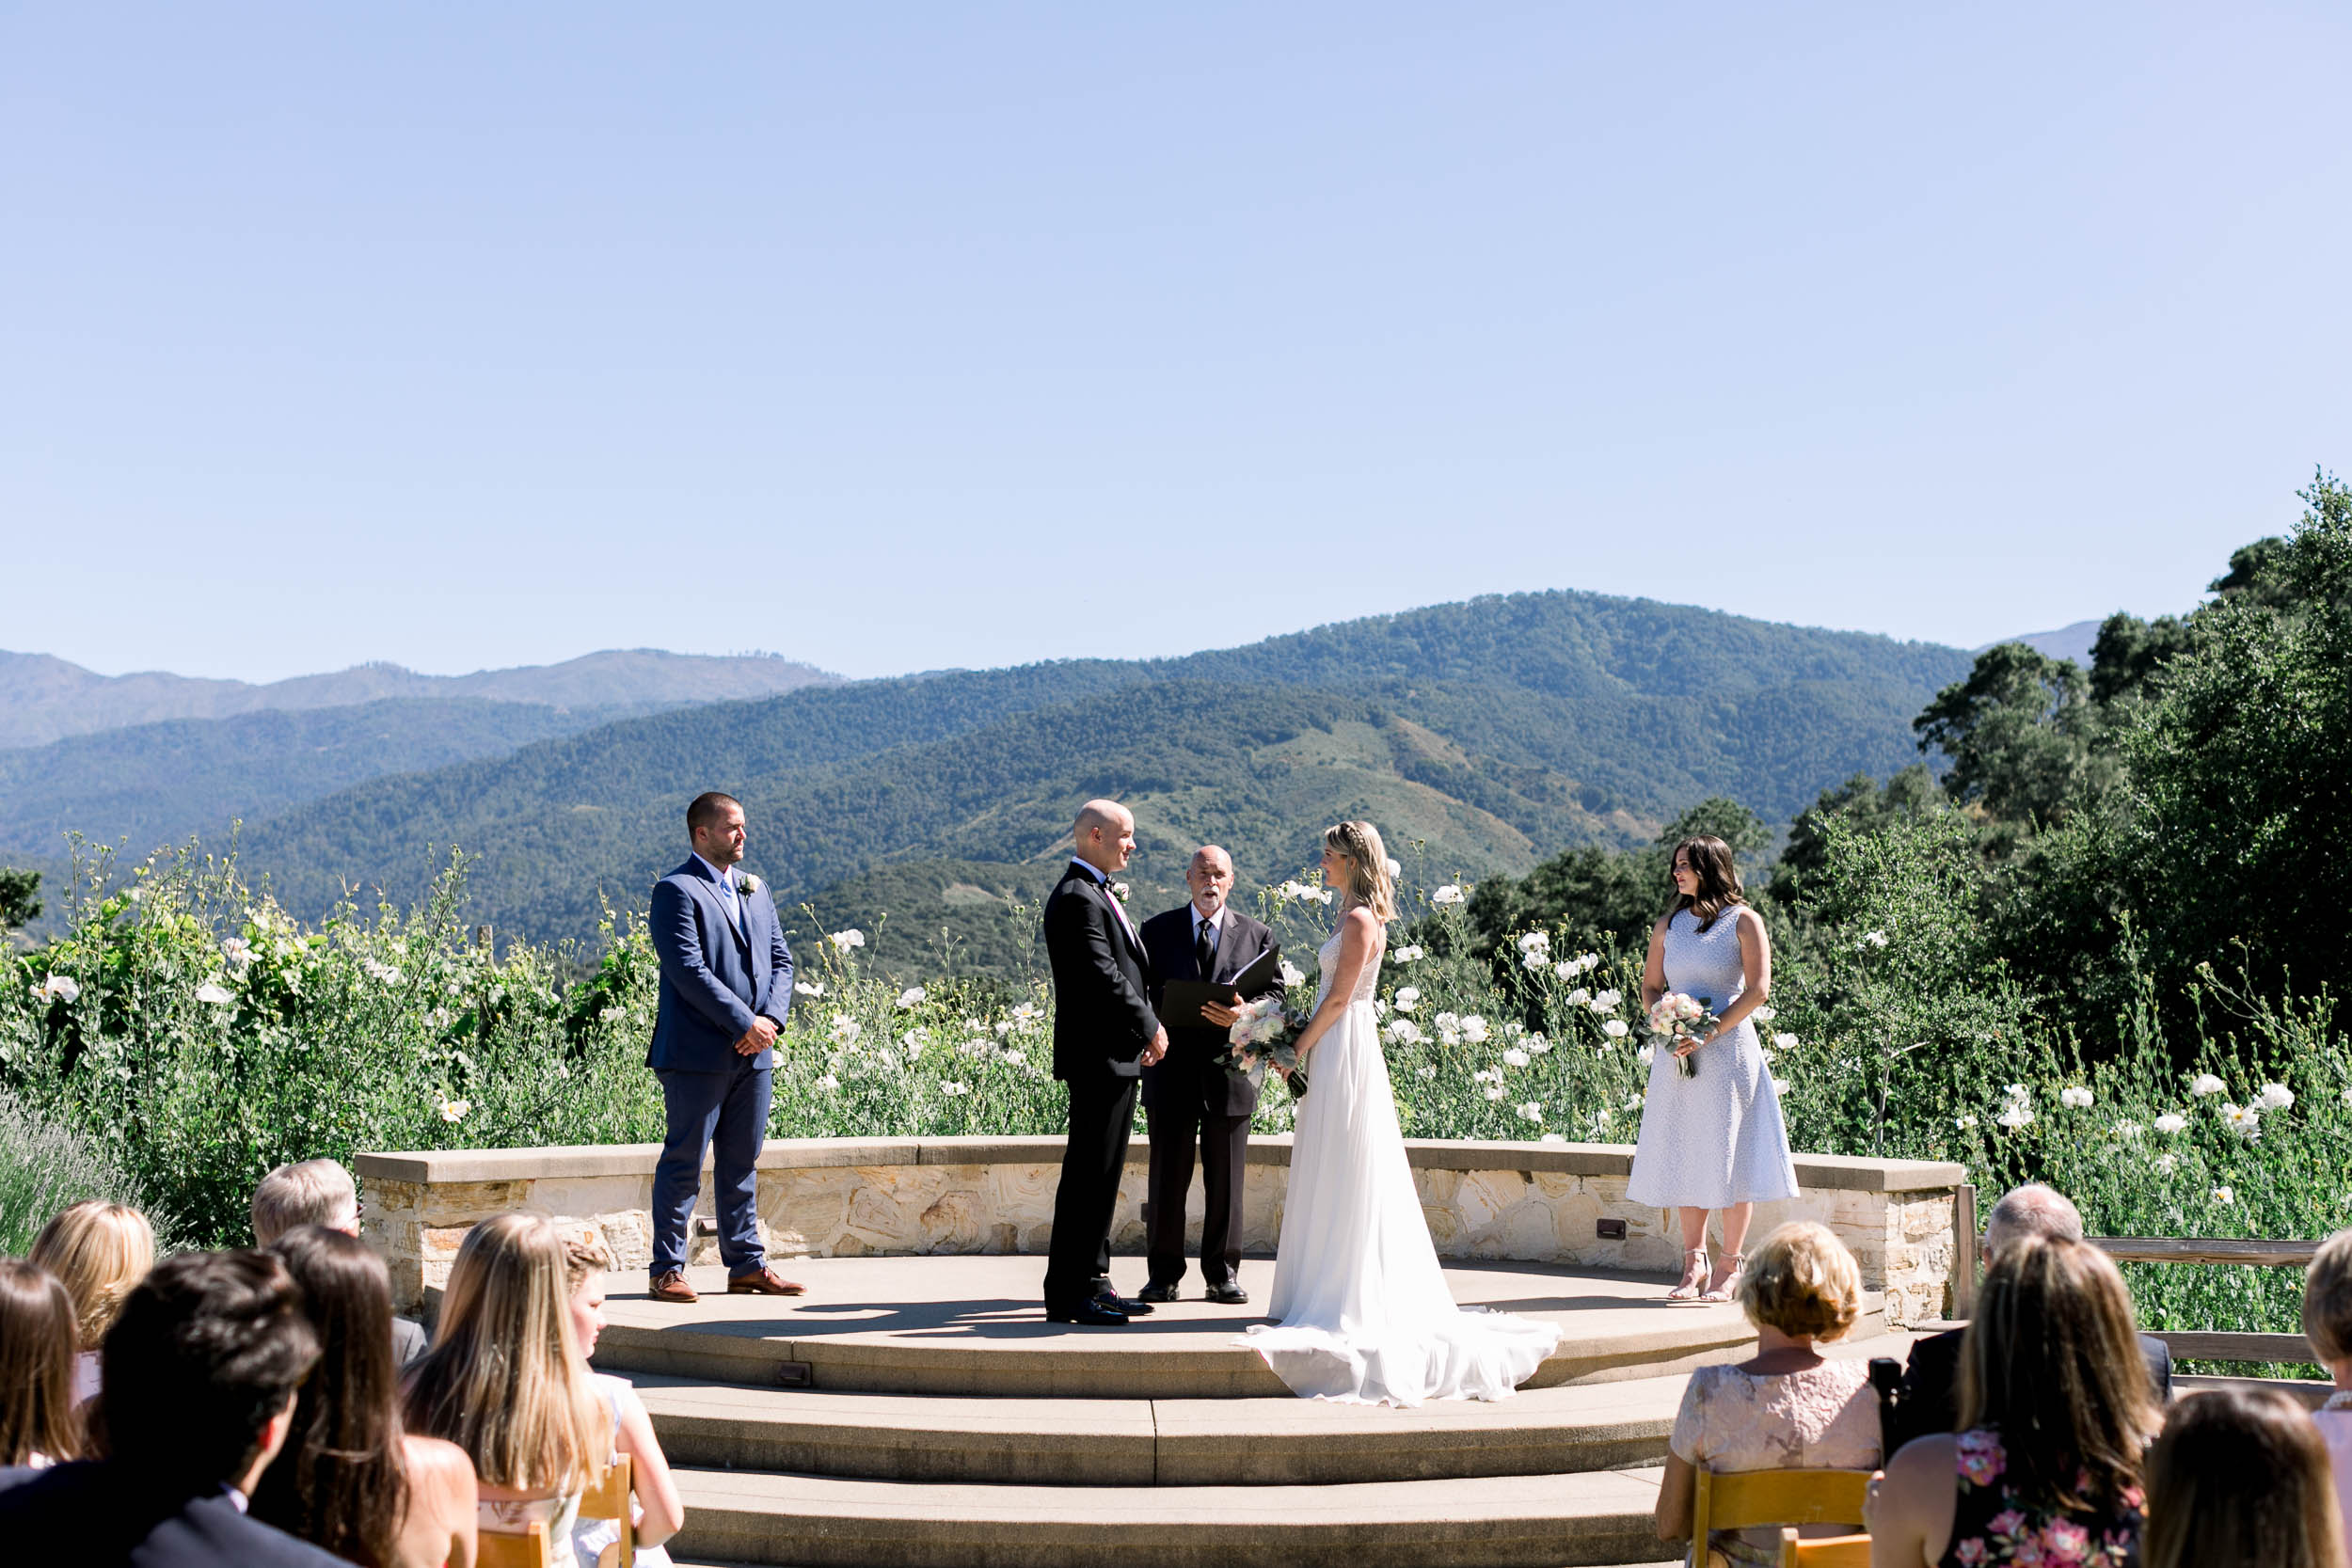 C+D_Holman Ranch Wedding_Carmel Valley_Buena Lane Photography_060619_ER266.jpg